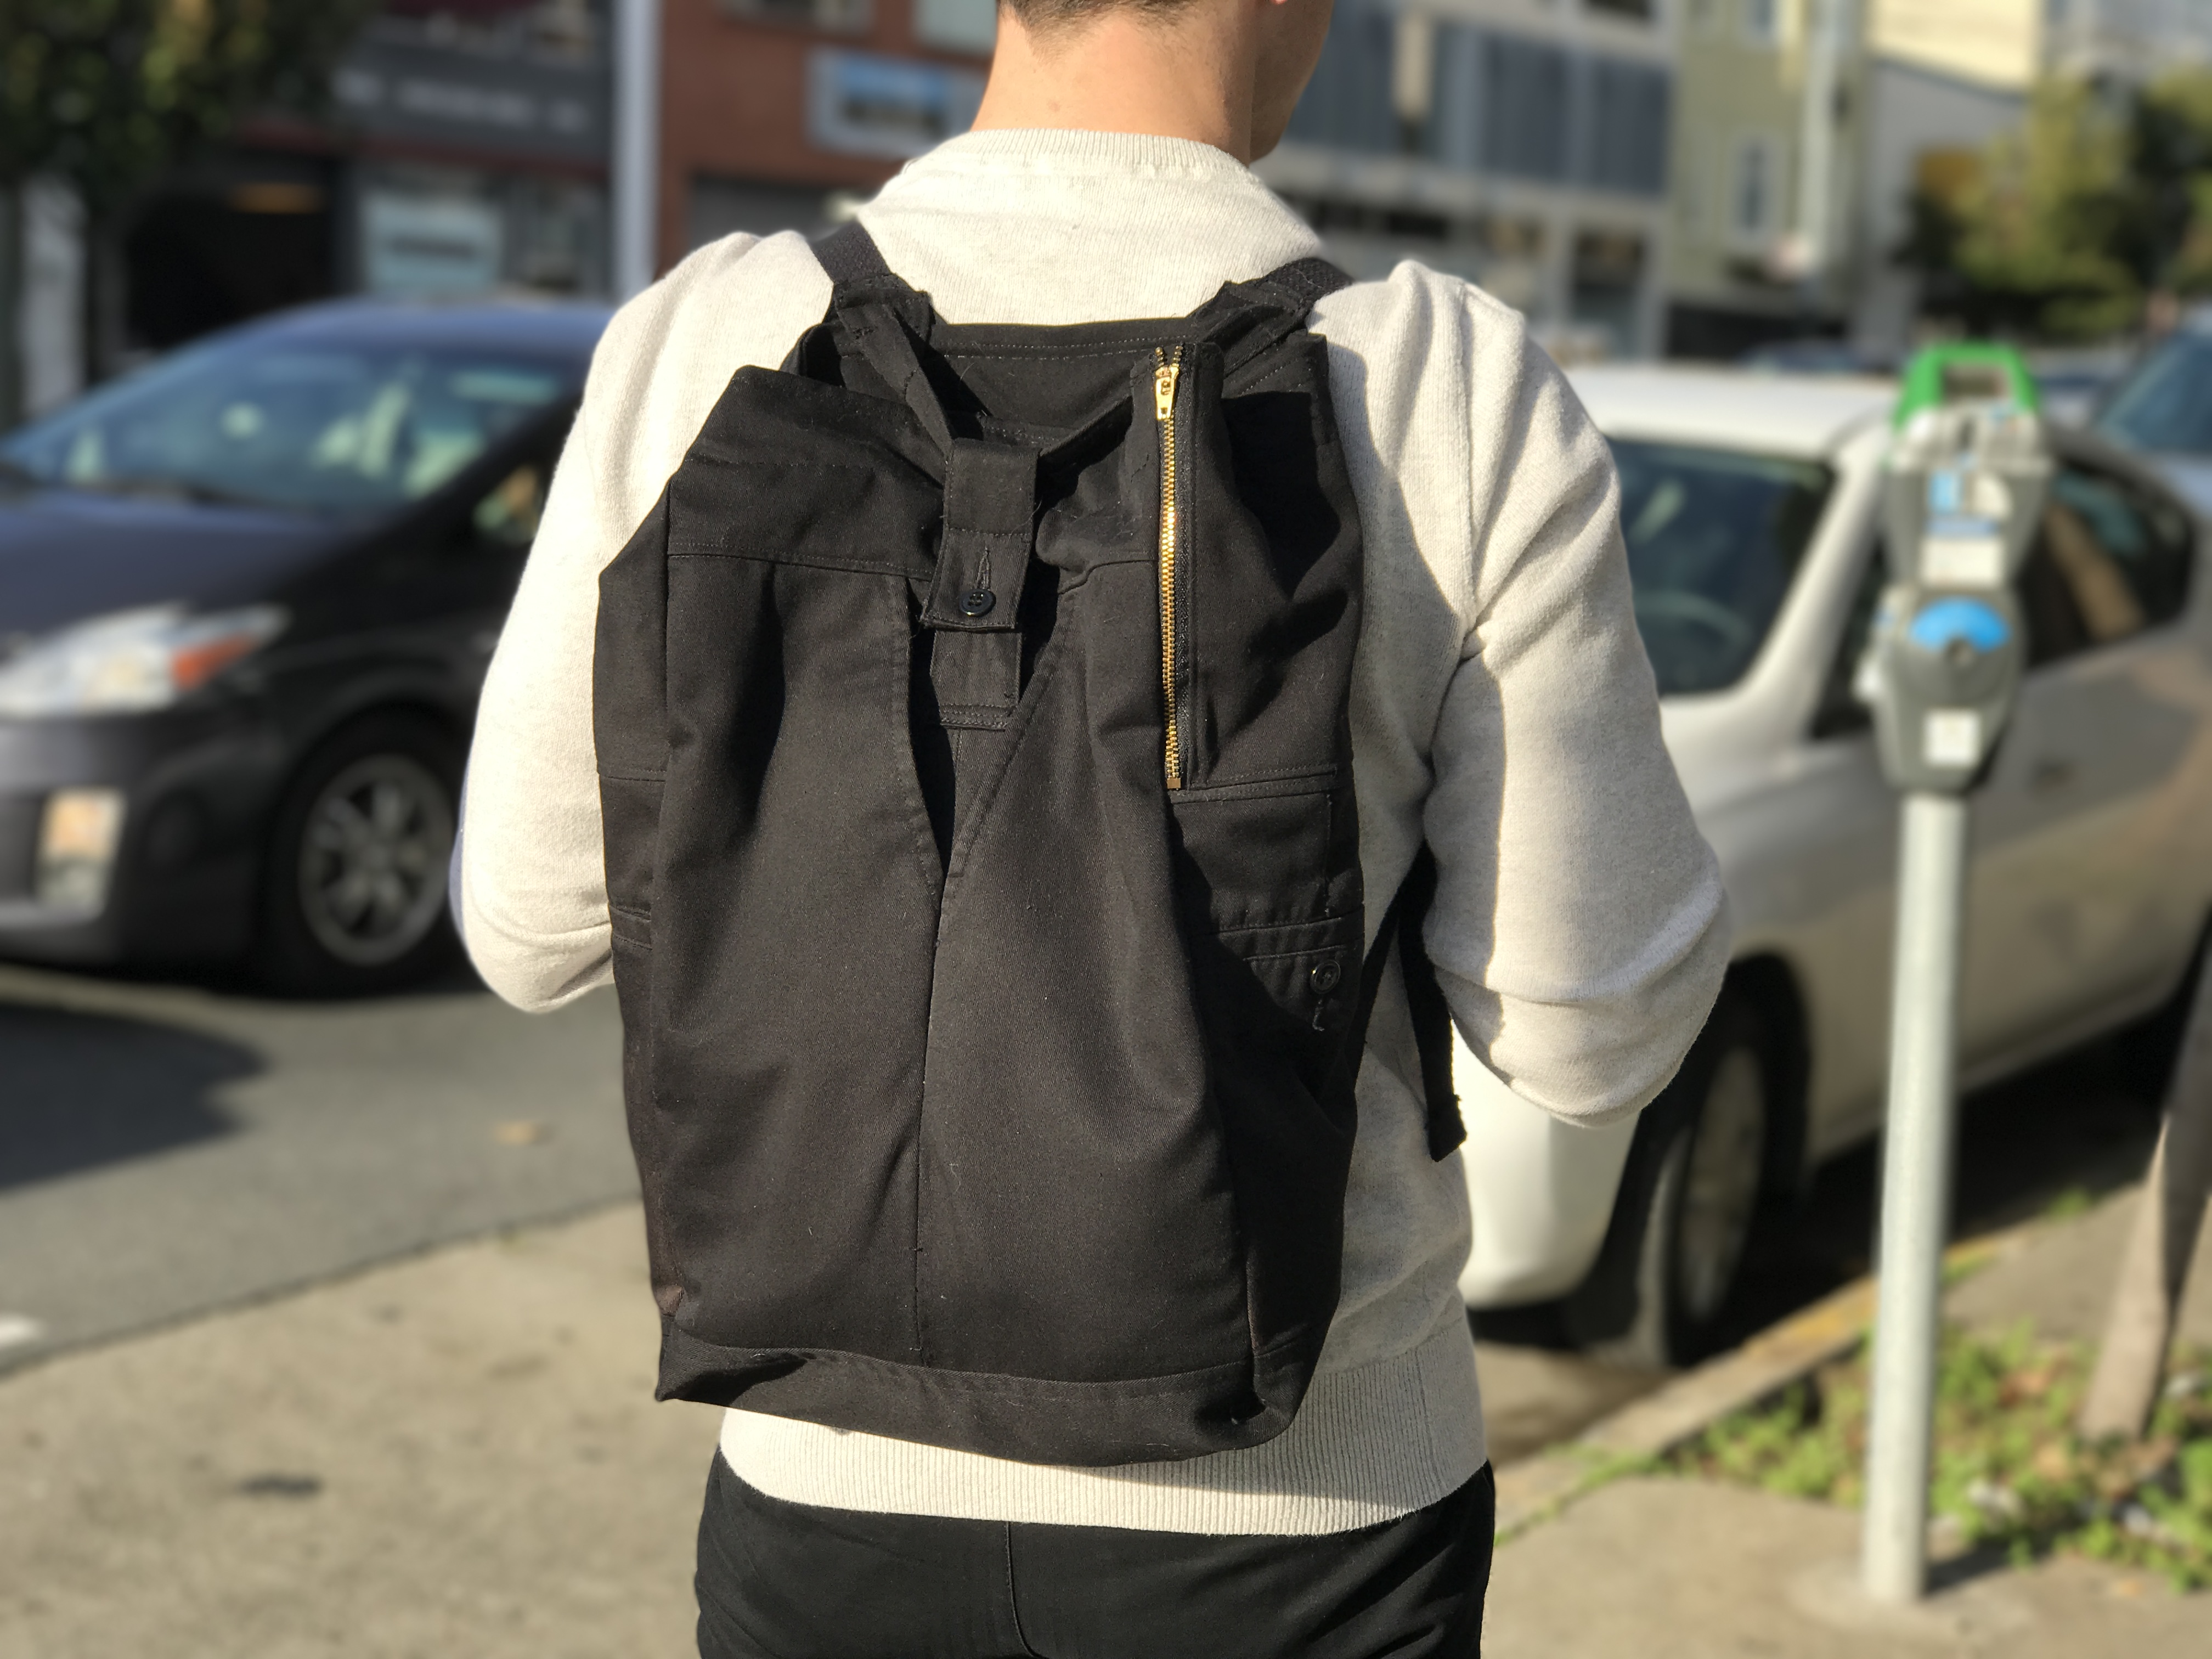 Picture of PANTSPACK: Make a Backpack Out of Old Pants